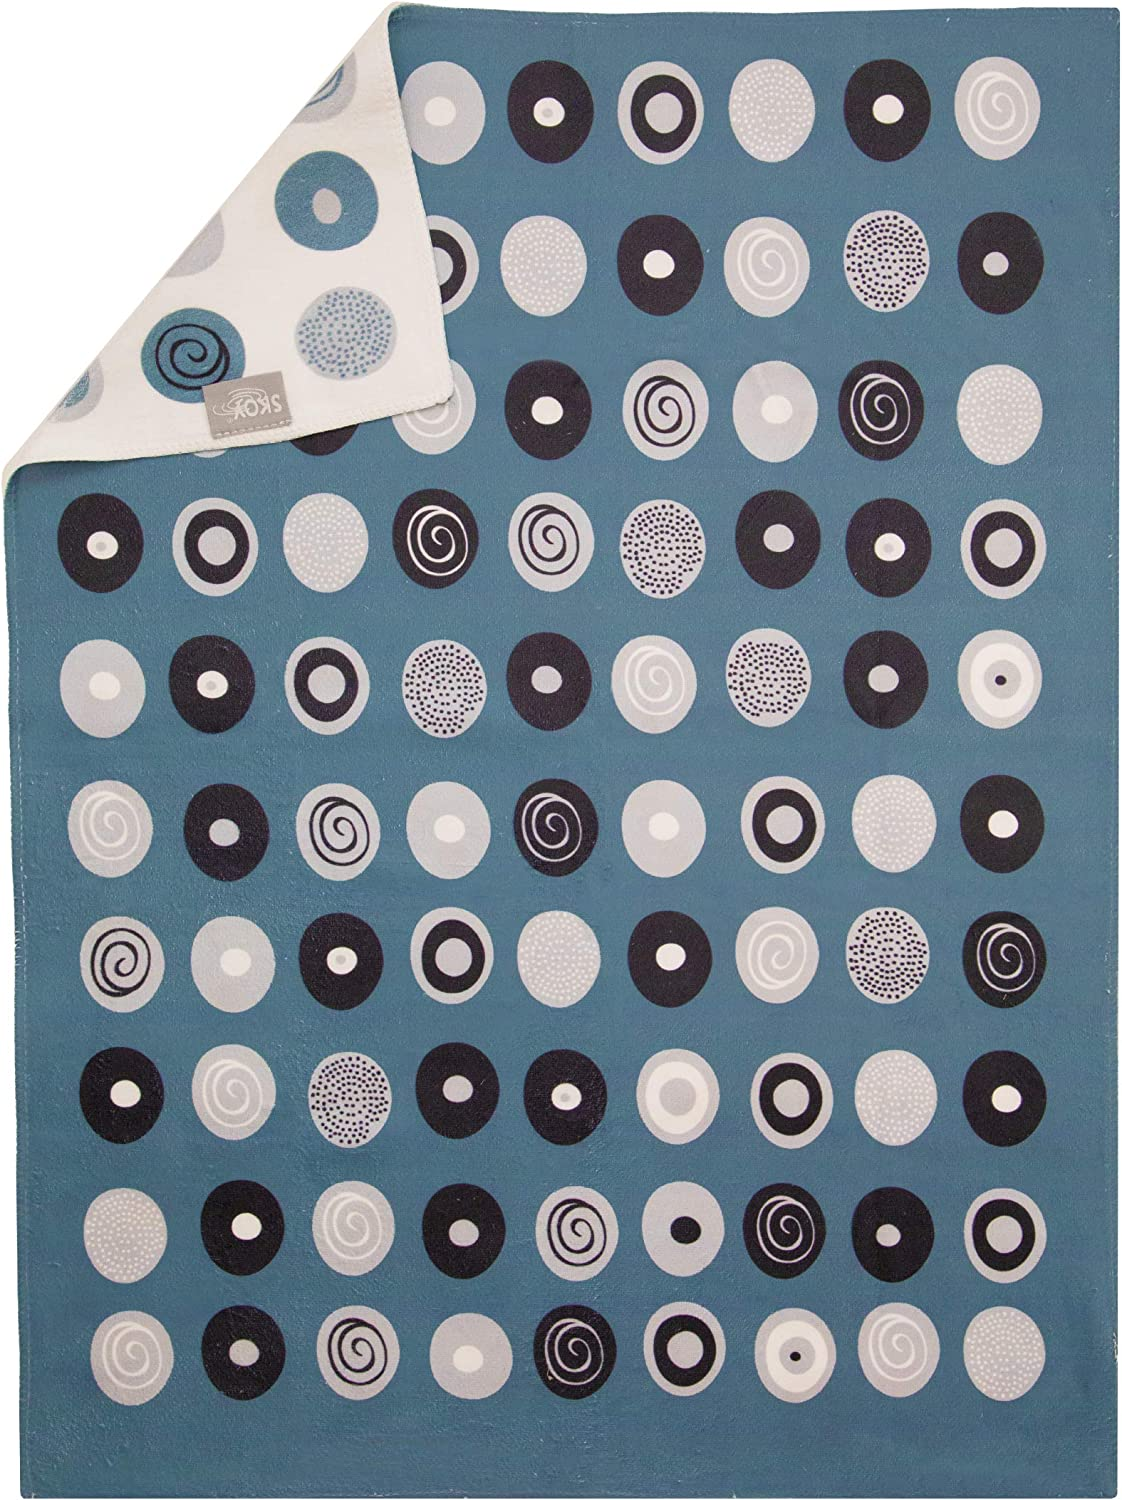 Skoy Kitchen Towel Recycled Regular dealer Super sale period limited for Dishes Glasswa Polyester